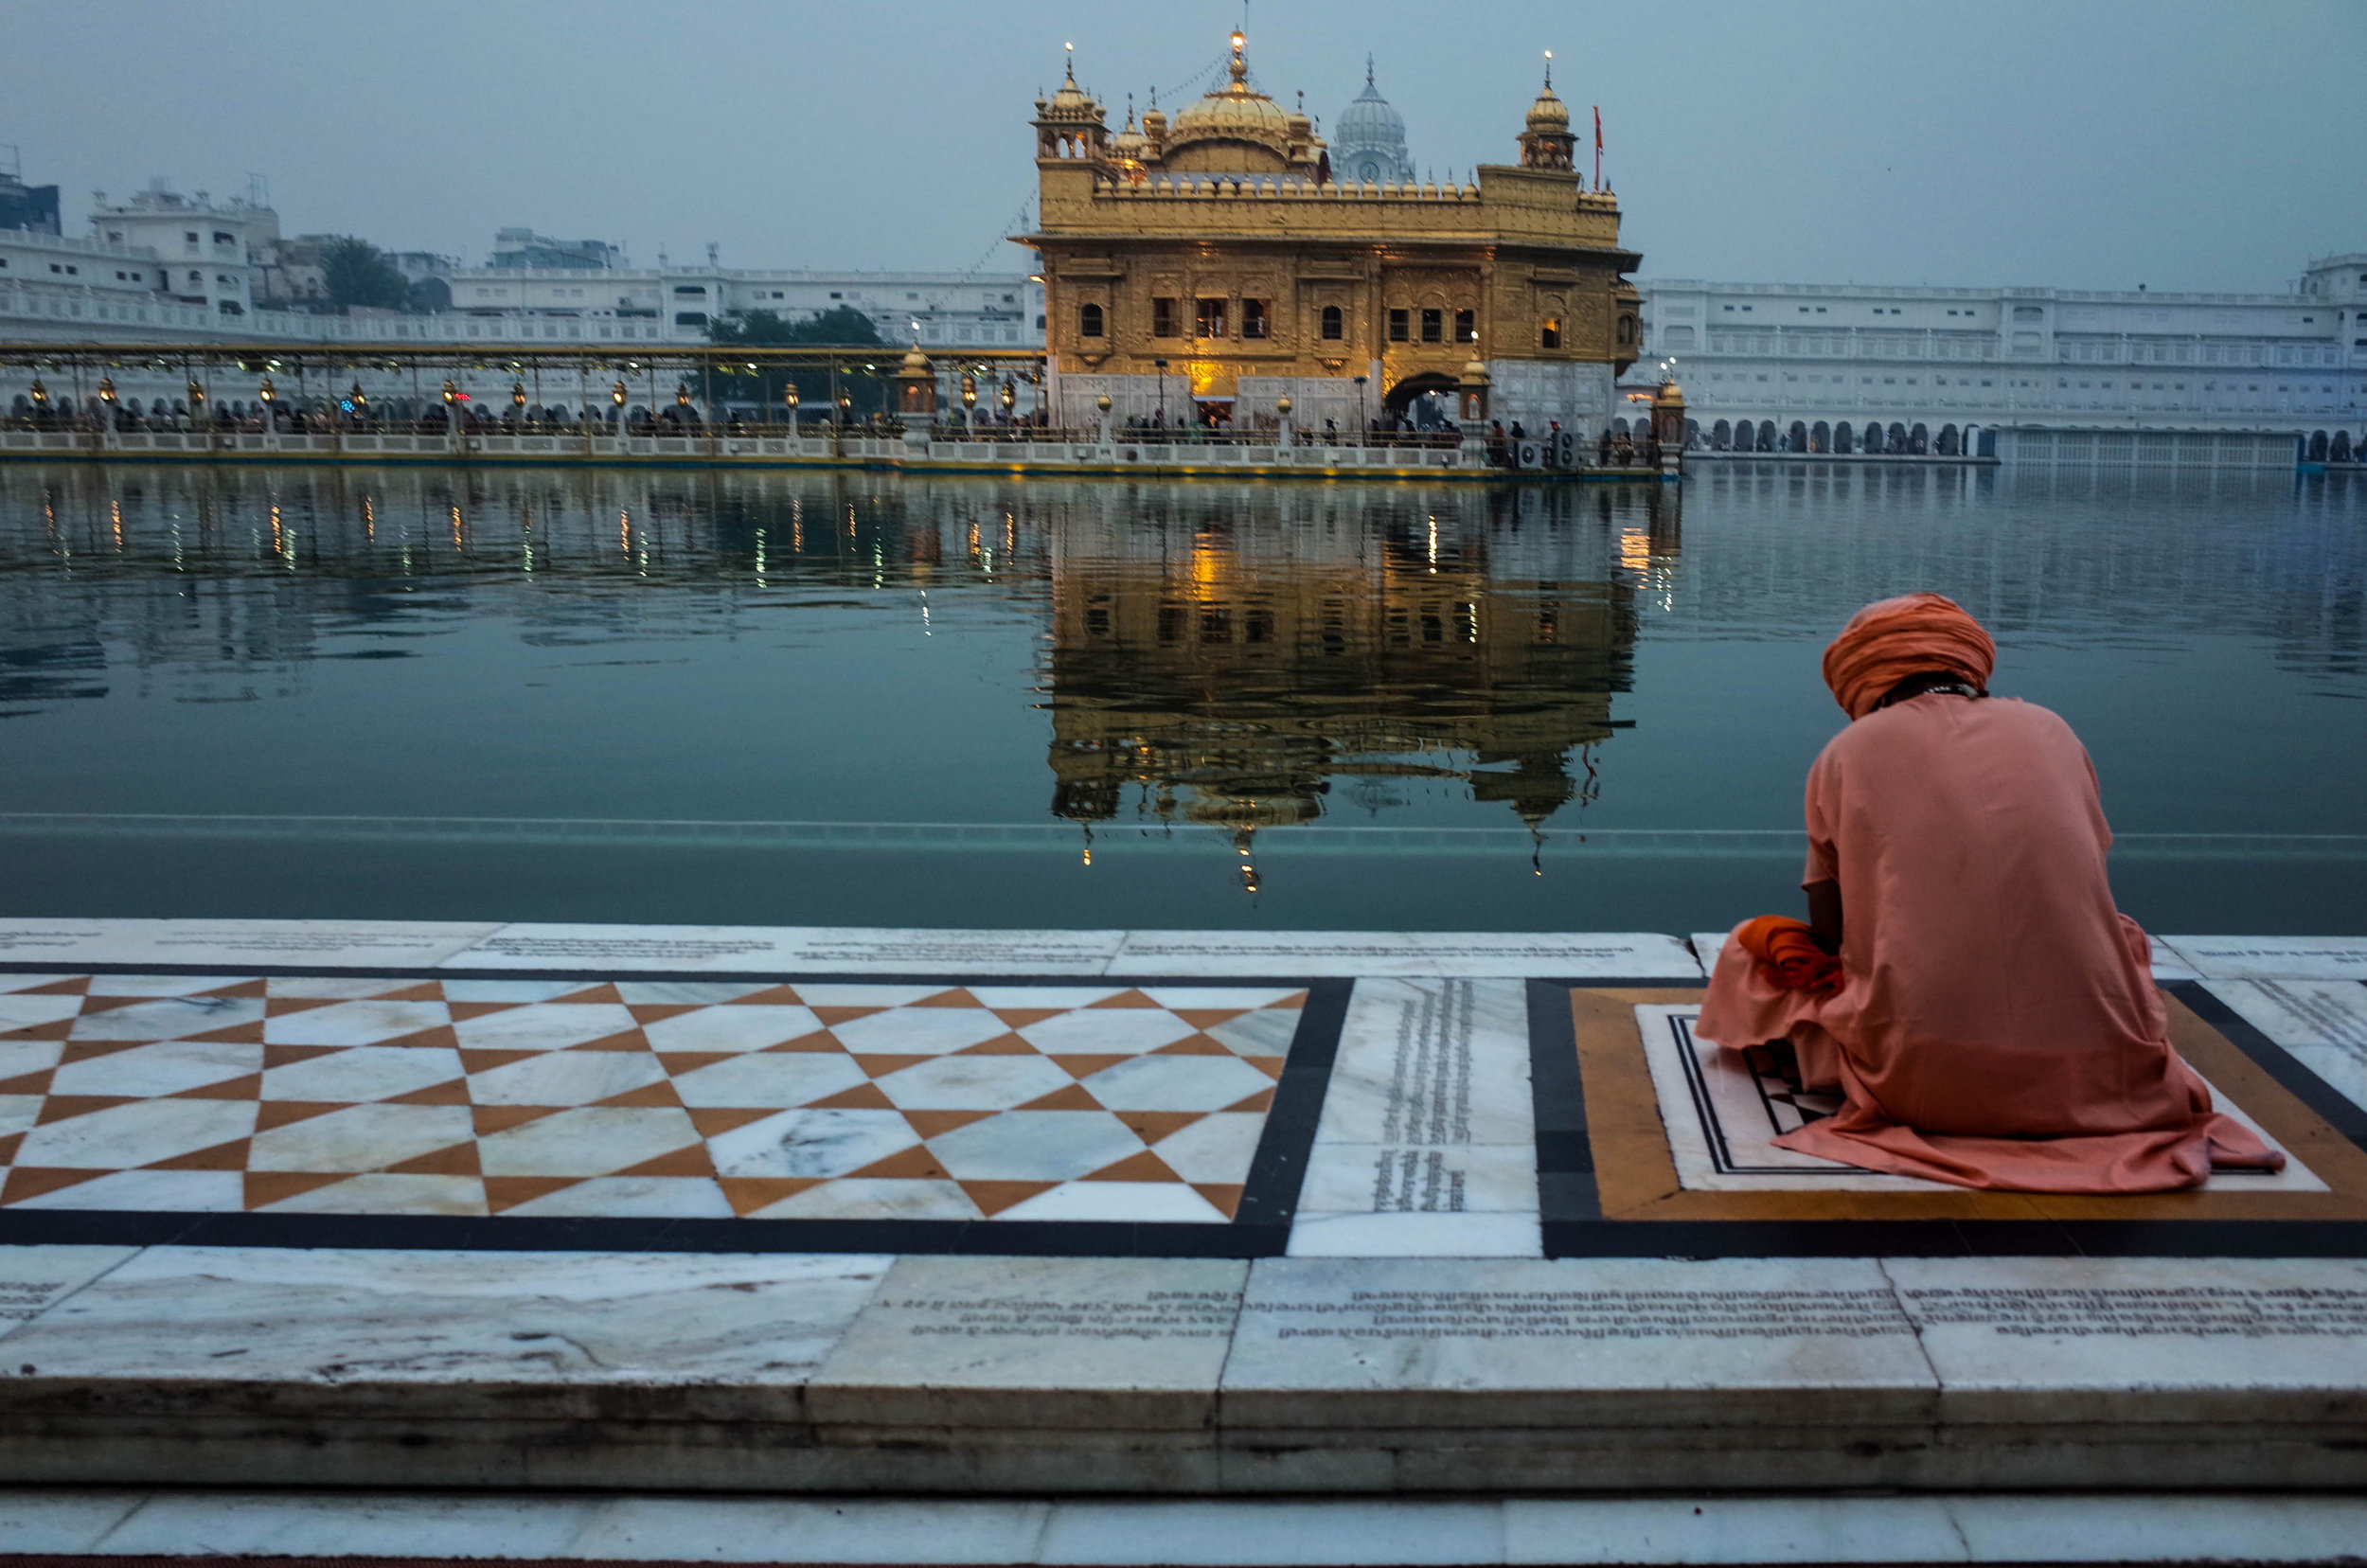 The Golden Temple houses the largest free kitchen in the world, feeding over 50,000 people every day.